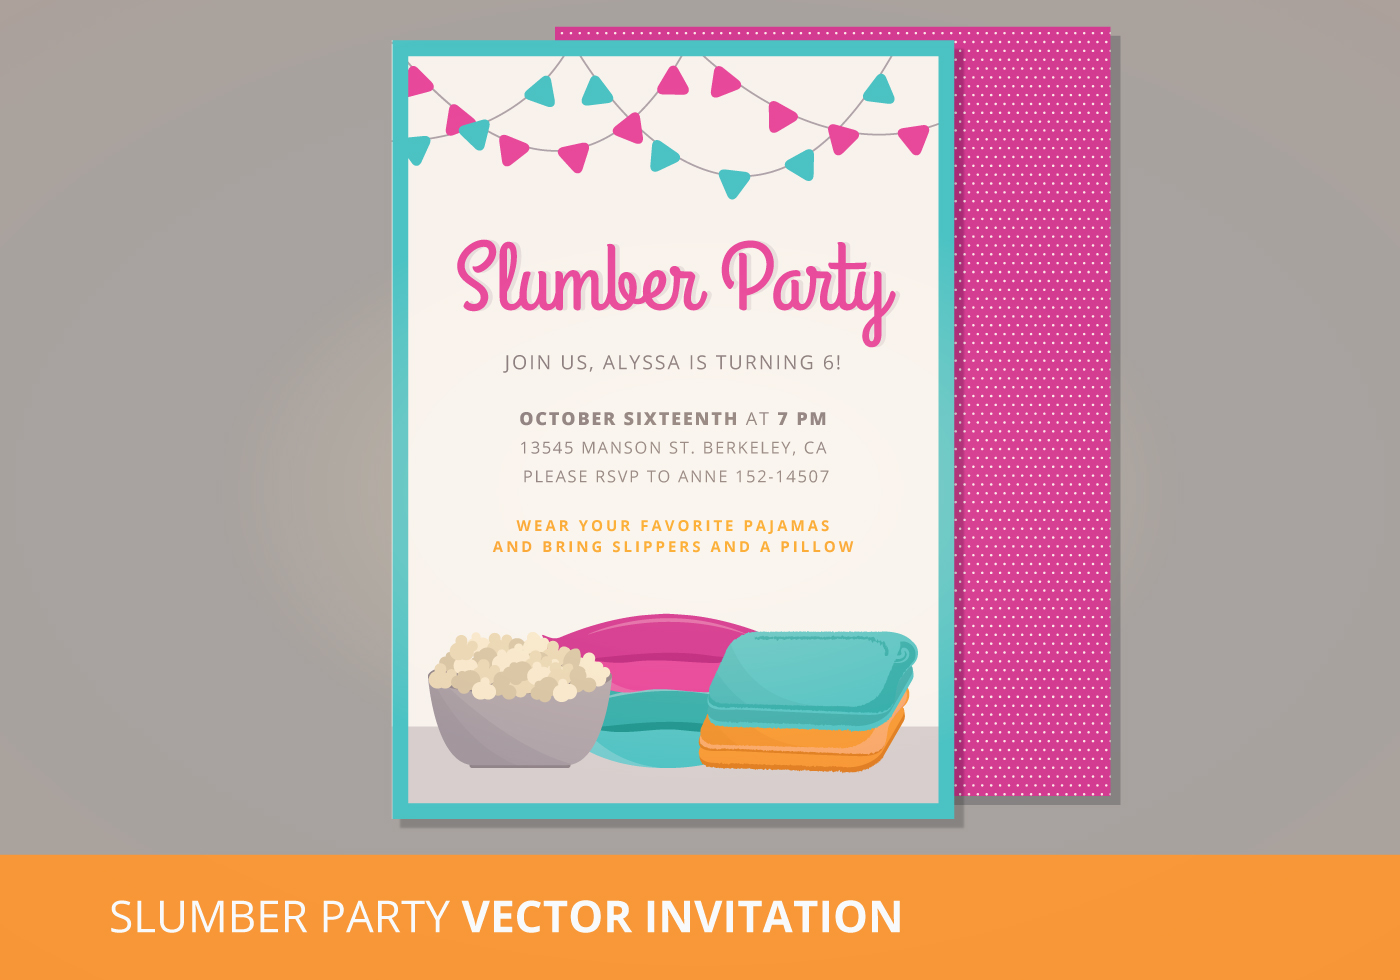 Slumber Party Invite Free Vector Art - (6731 Free Downloads)